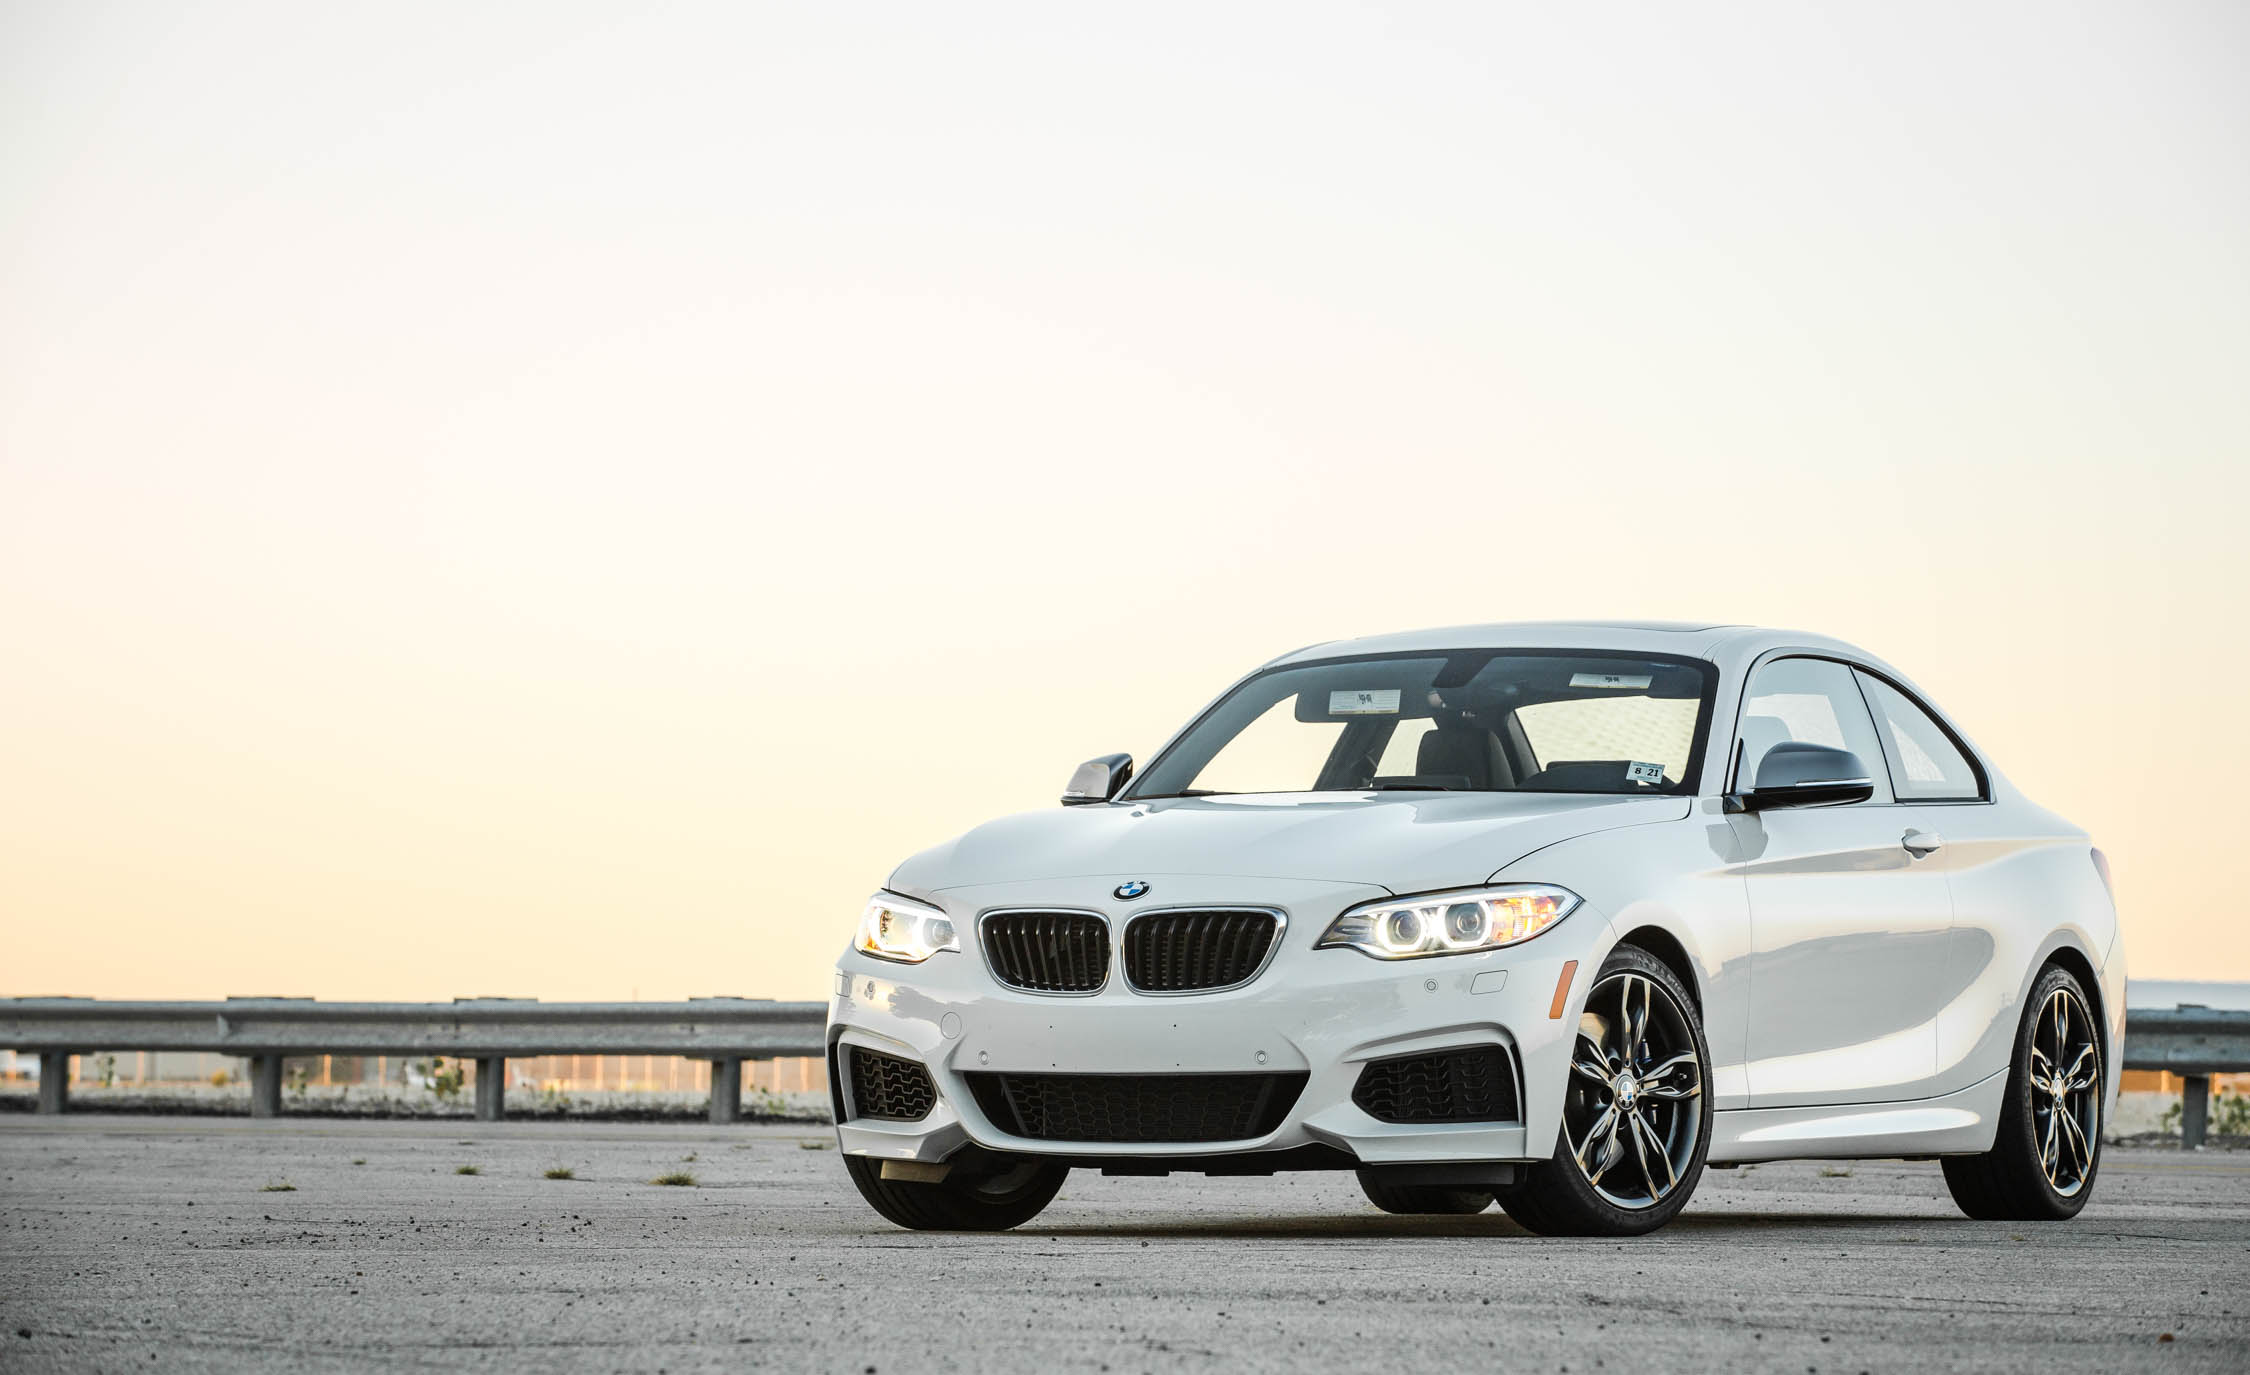 2017 BMW M240i Coupe Automatic Exterior Front And Side (Photo 2 of 36)